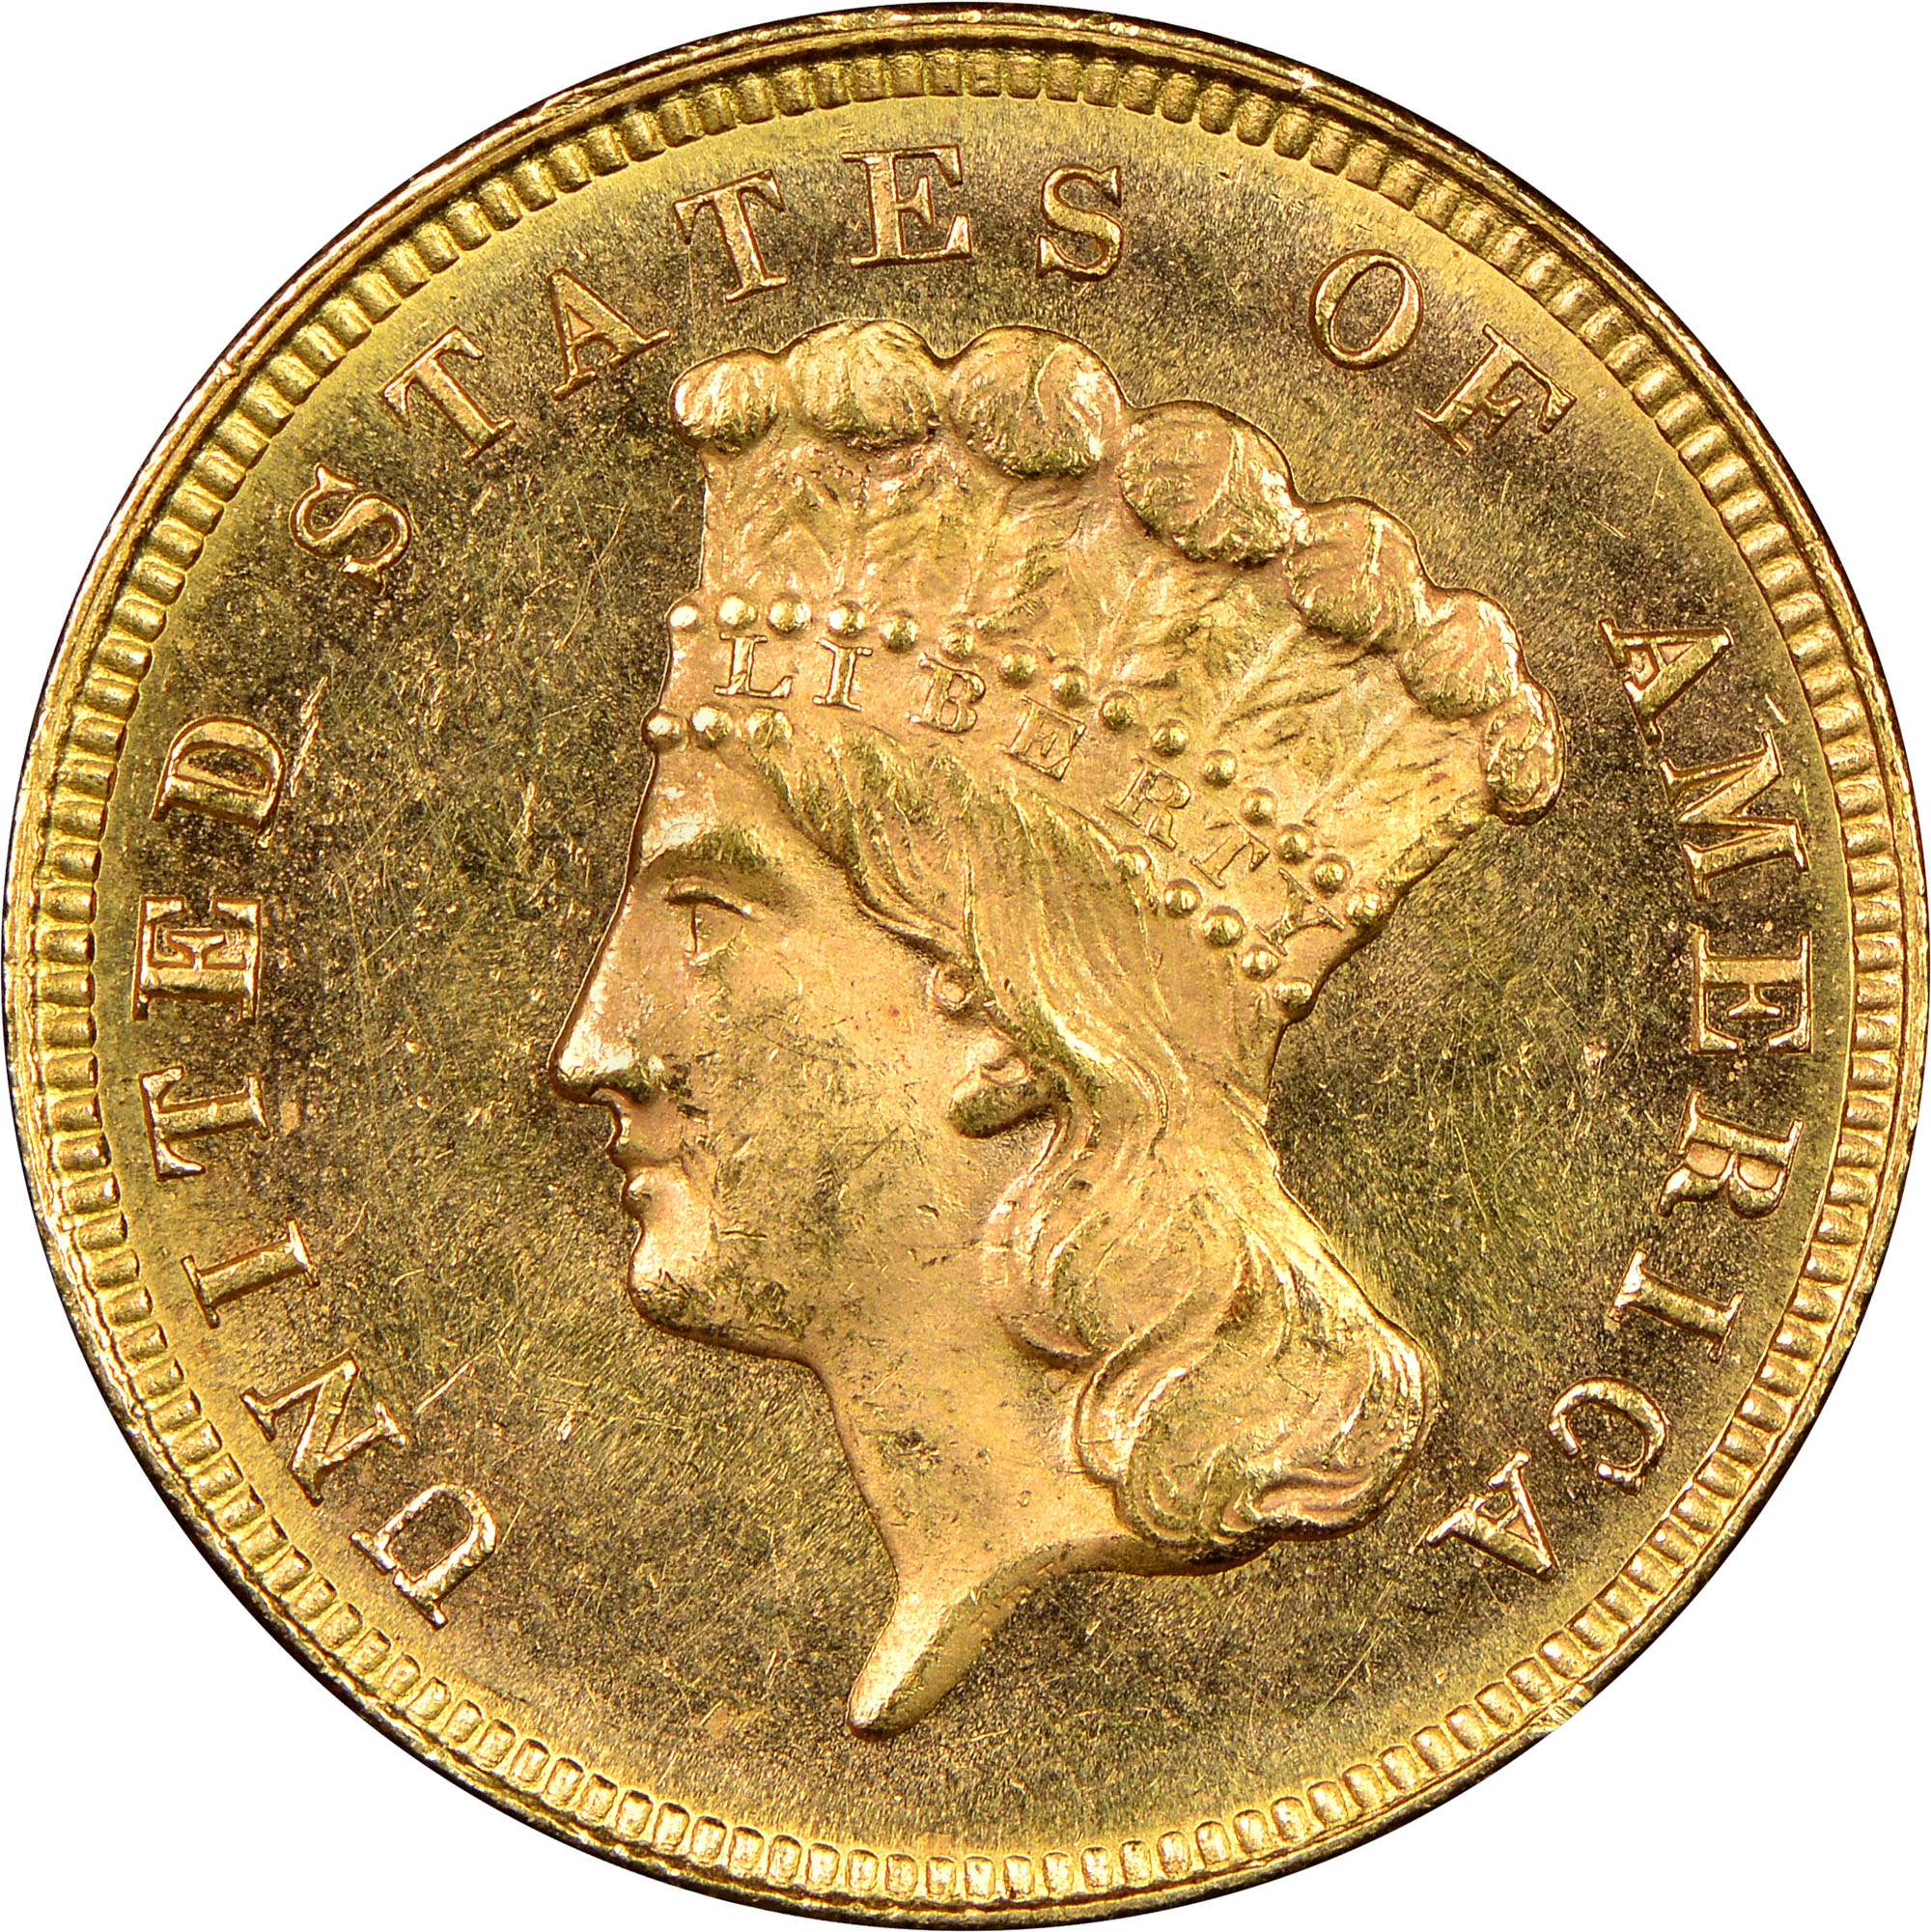 The 3 Gold Coin Buy Gold Amp Silver Online Official